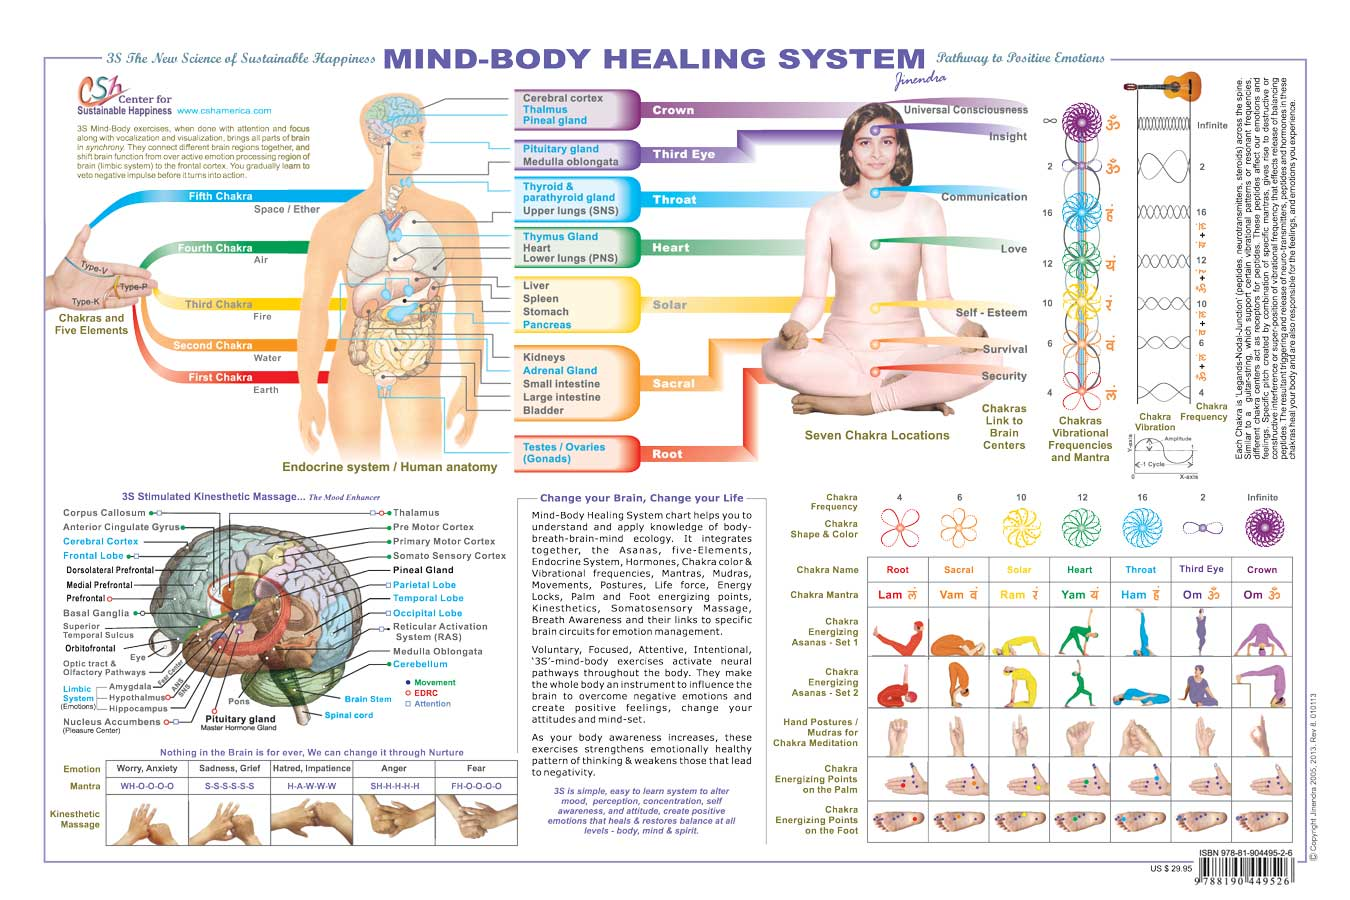 Mind-Body Healing Chart - Center for Sustainable Happiness